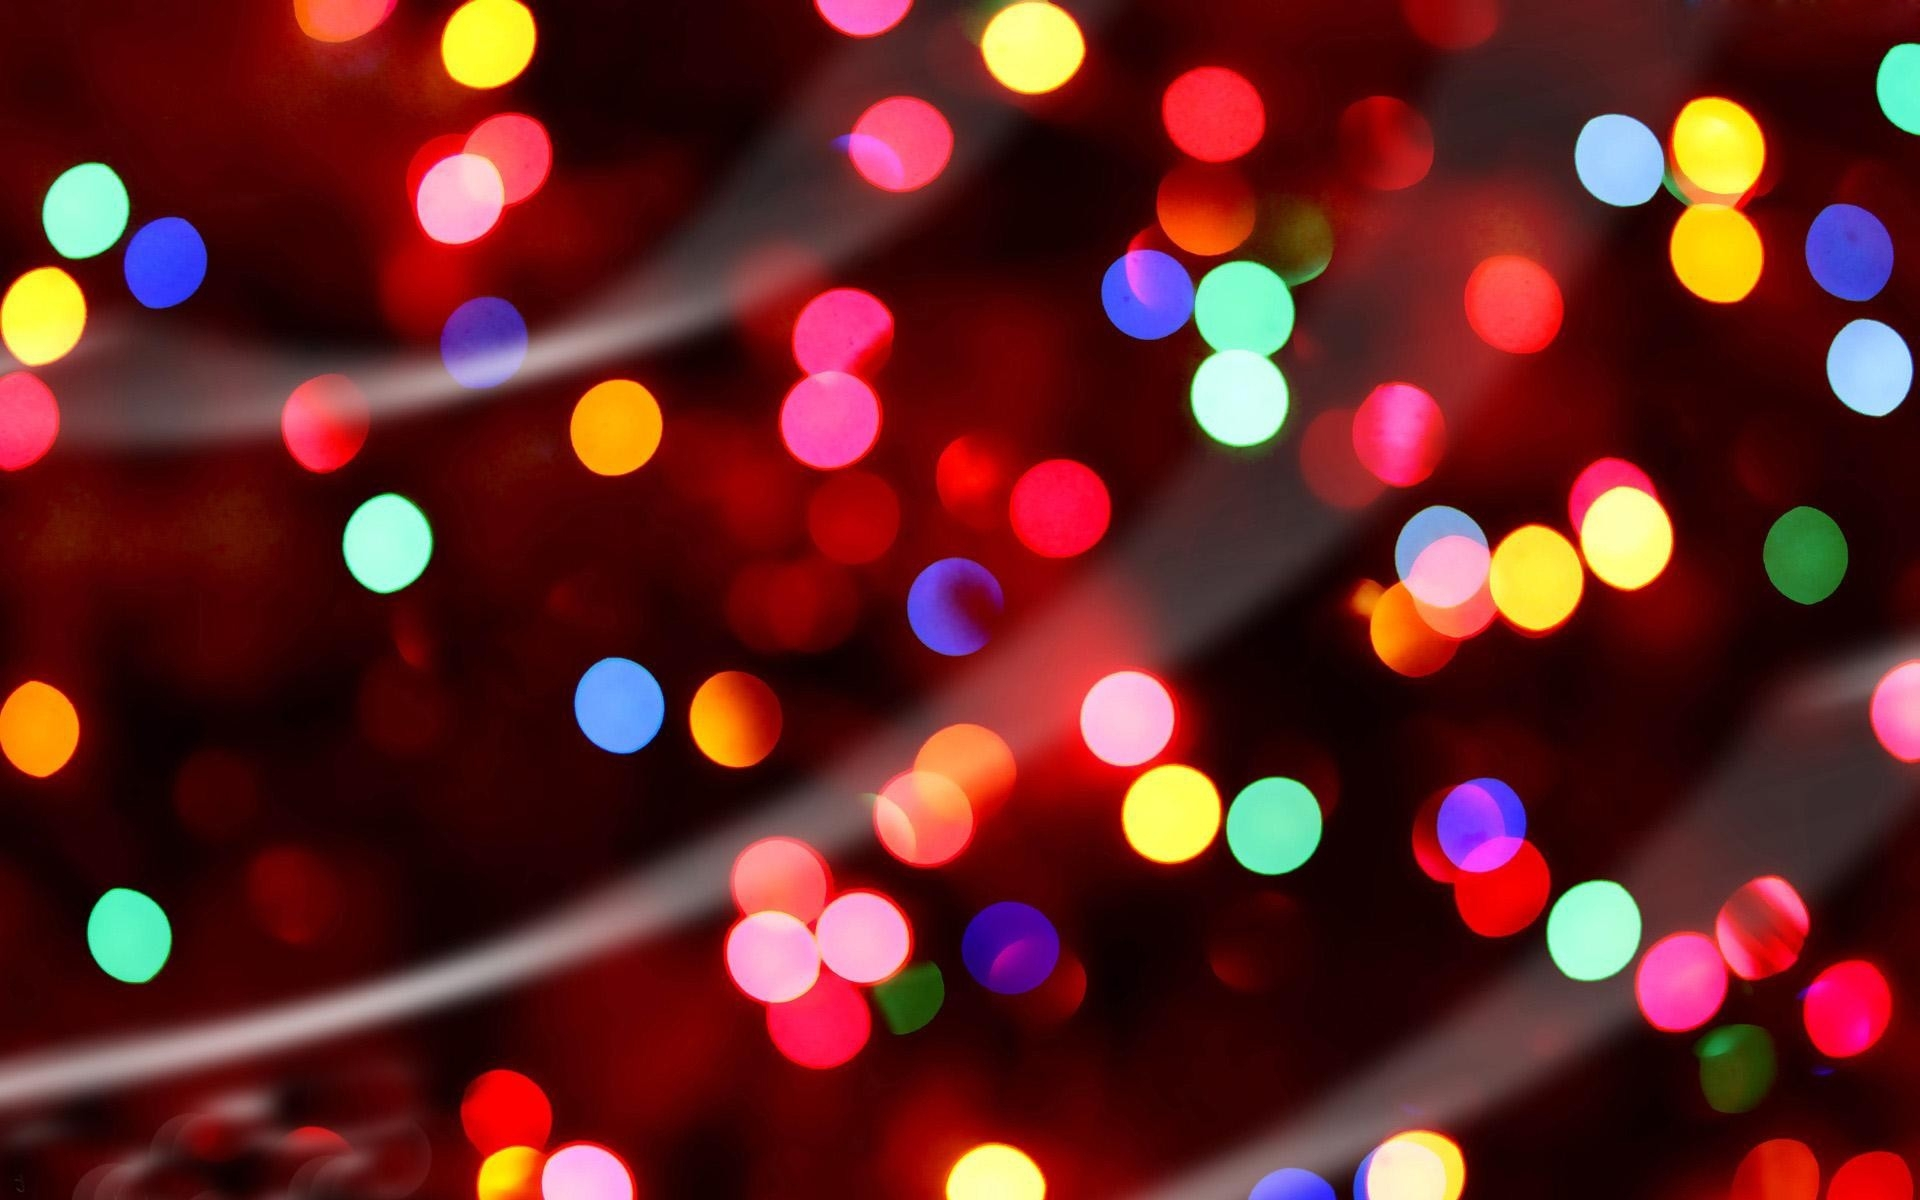 background christmas lights wallpaper. - media file | pixelstalk